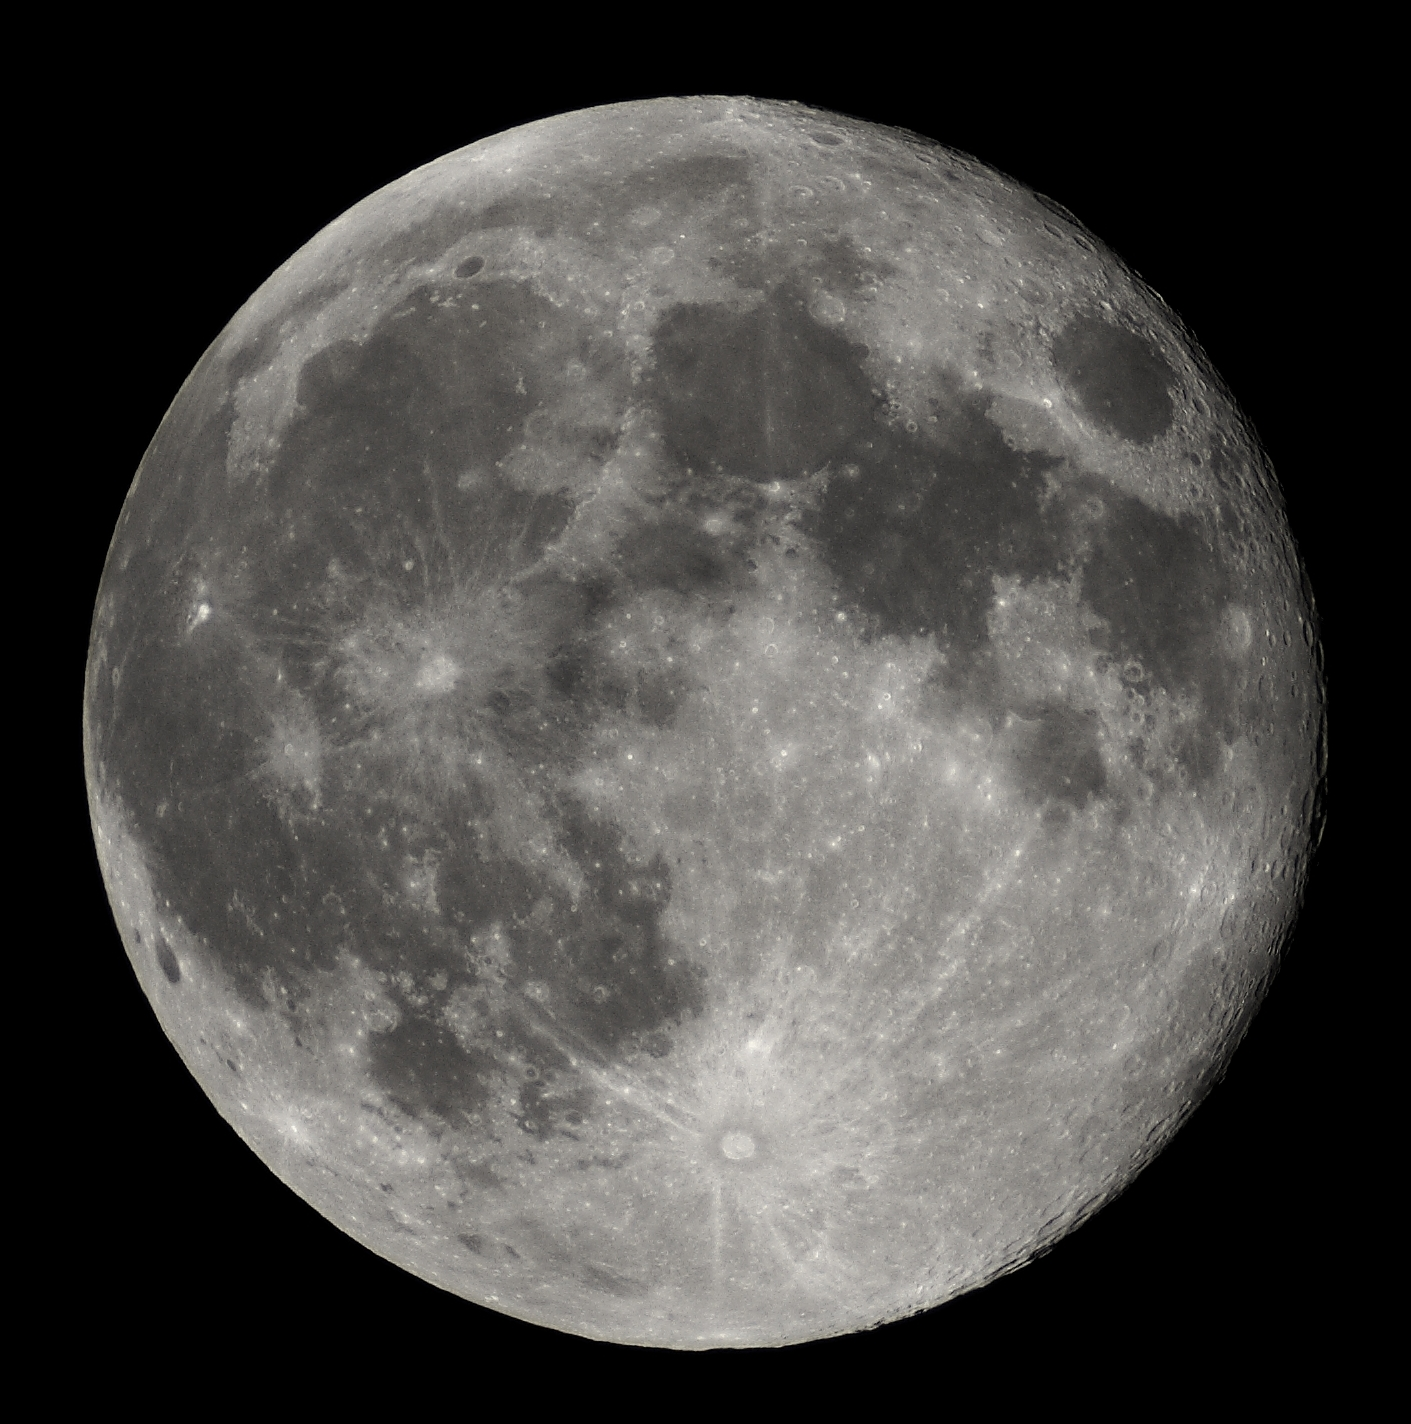 Full Moon view from earth In Belgium (Hamois).